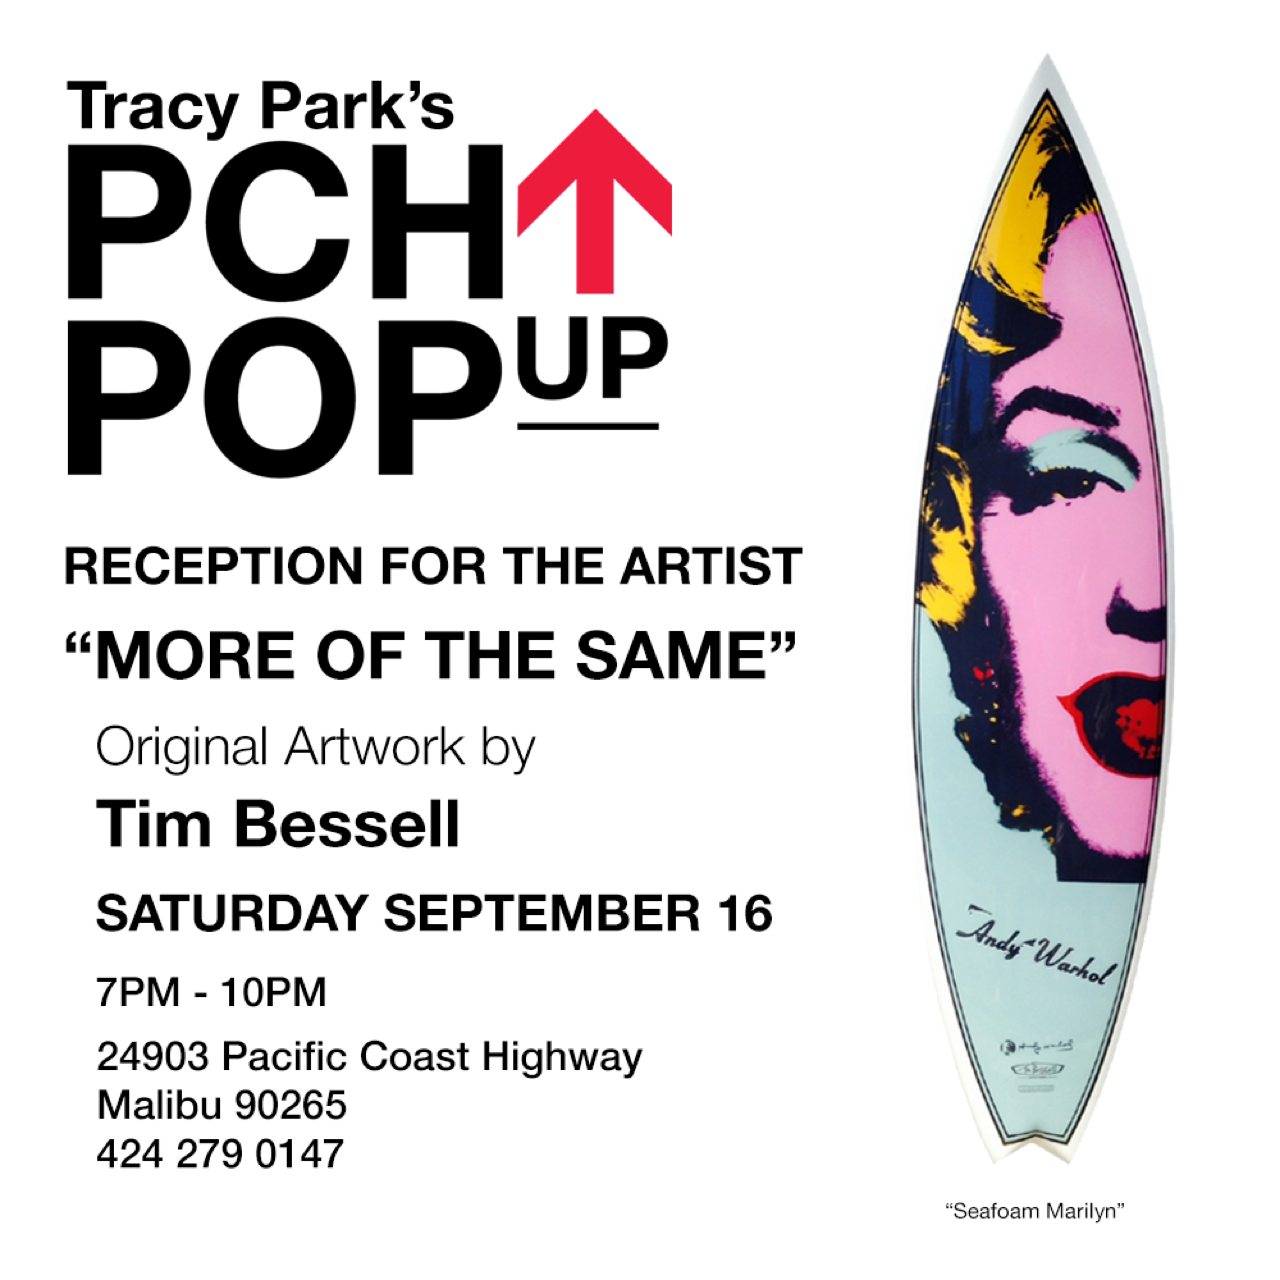 PCH pop up Tim Bessell Warhol